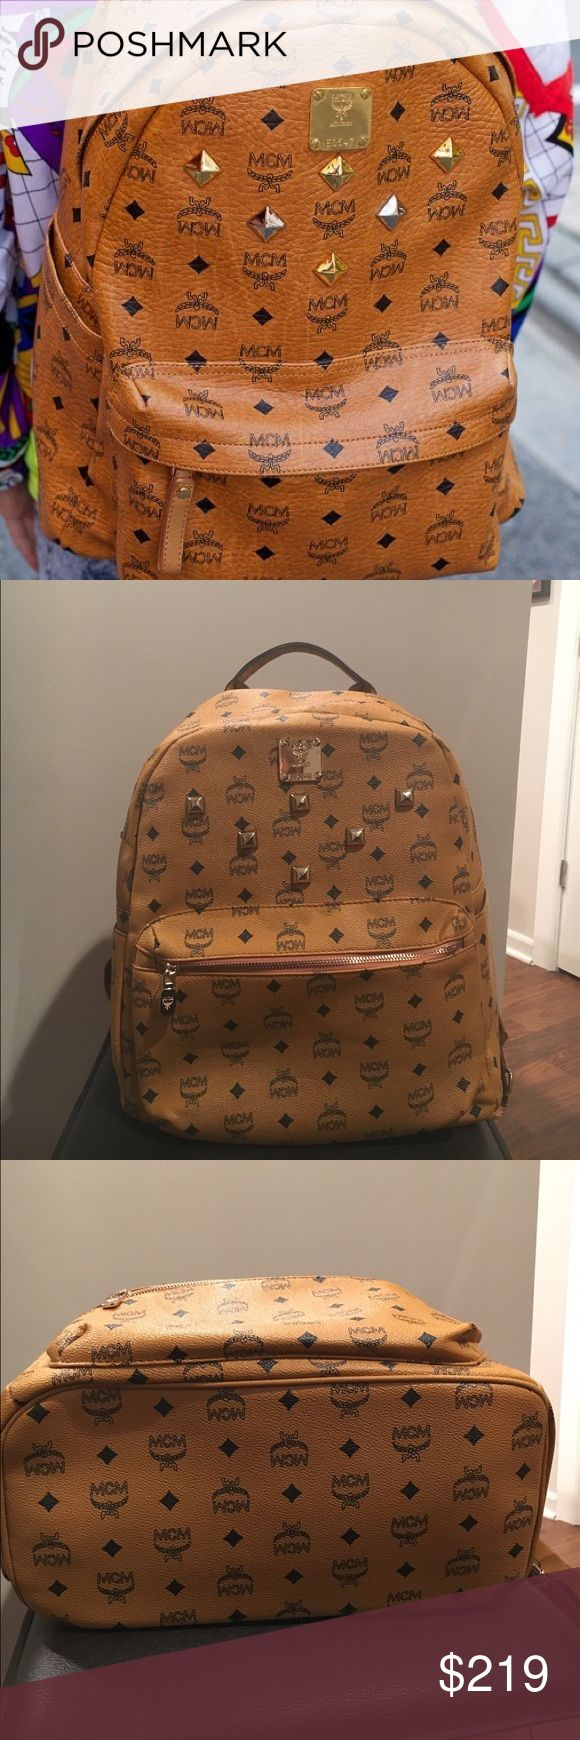 MCM backpack 🎒 MCM beautiful backpack. Price reflect auth!!! MCM Bags Backpacks